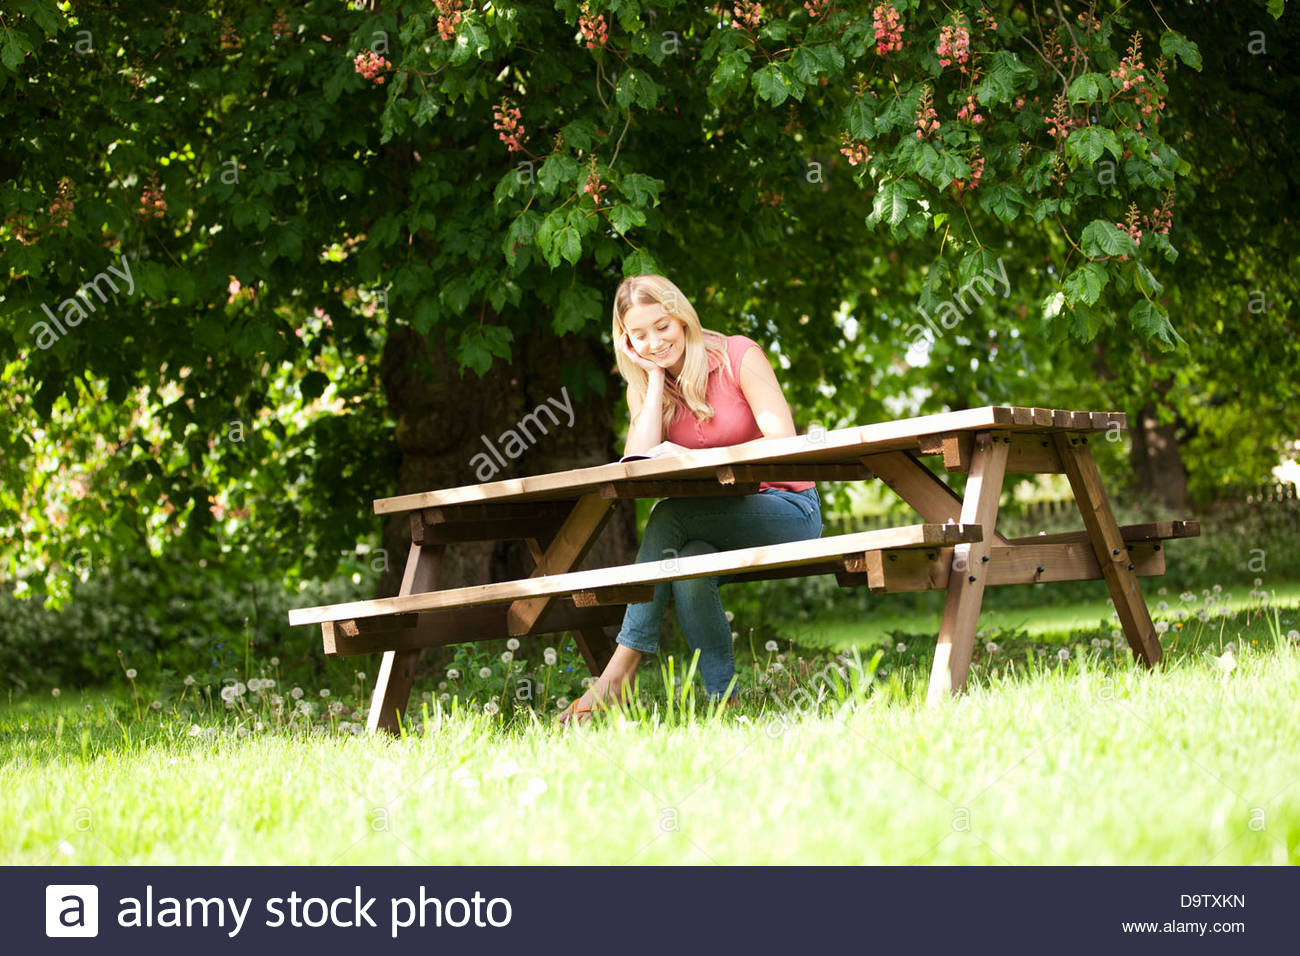 A young woman sitting on a garden bench reading a book, smiling - Stock Image